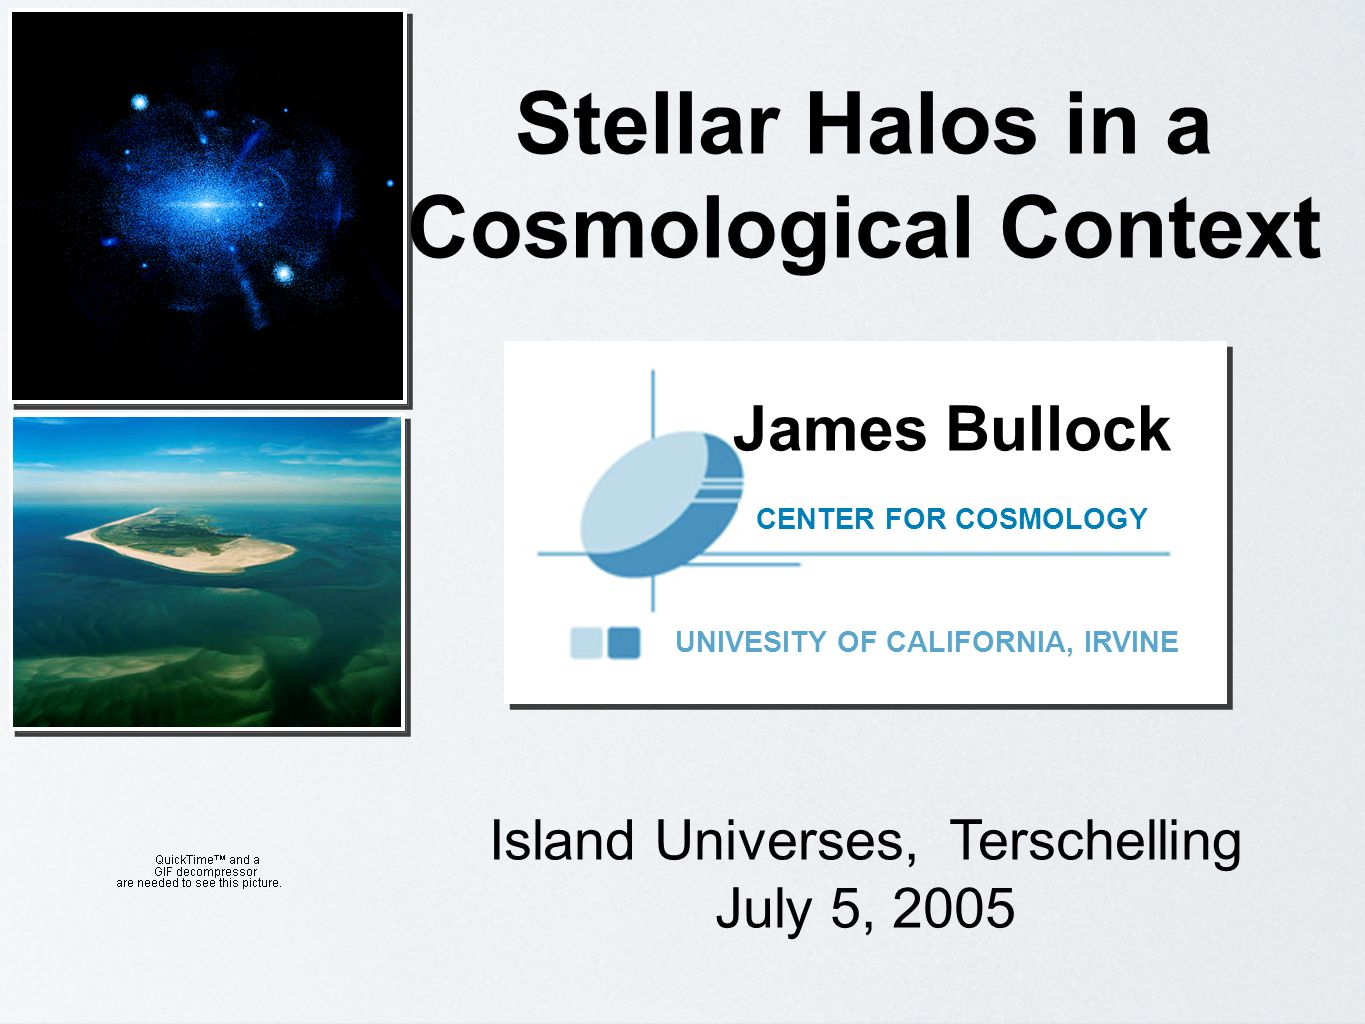 James Bullock UNIVESITY OF CALIFORNIA, IRVINE CENTER FOR COSMOLOGY Island Universes, Terschelling July 5, 2005 Stellar Halos in a Cosmological Context